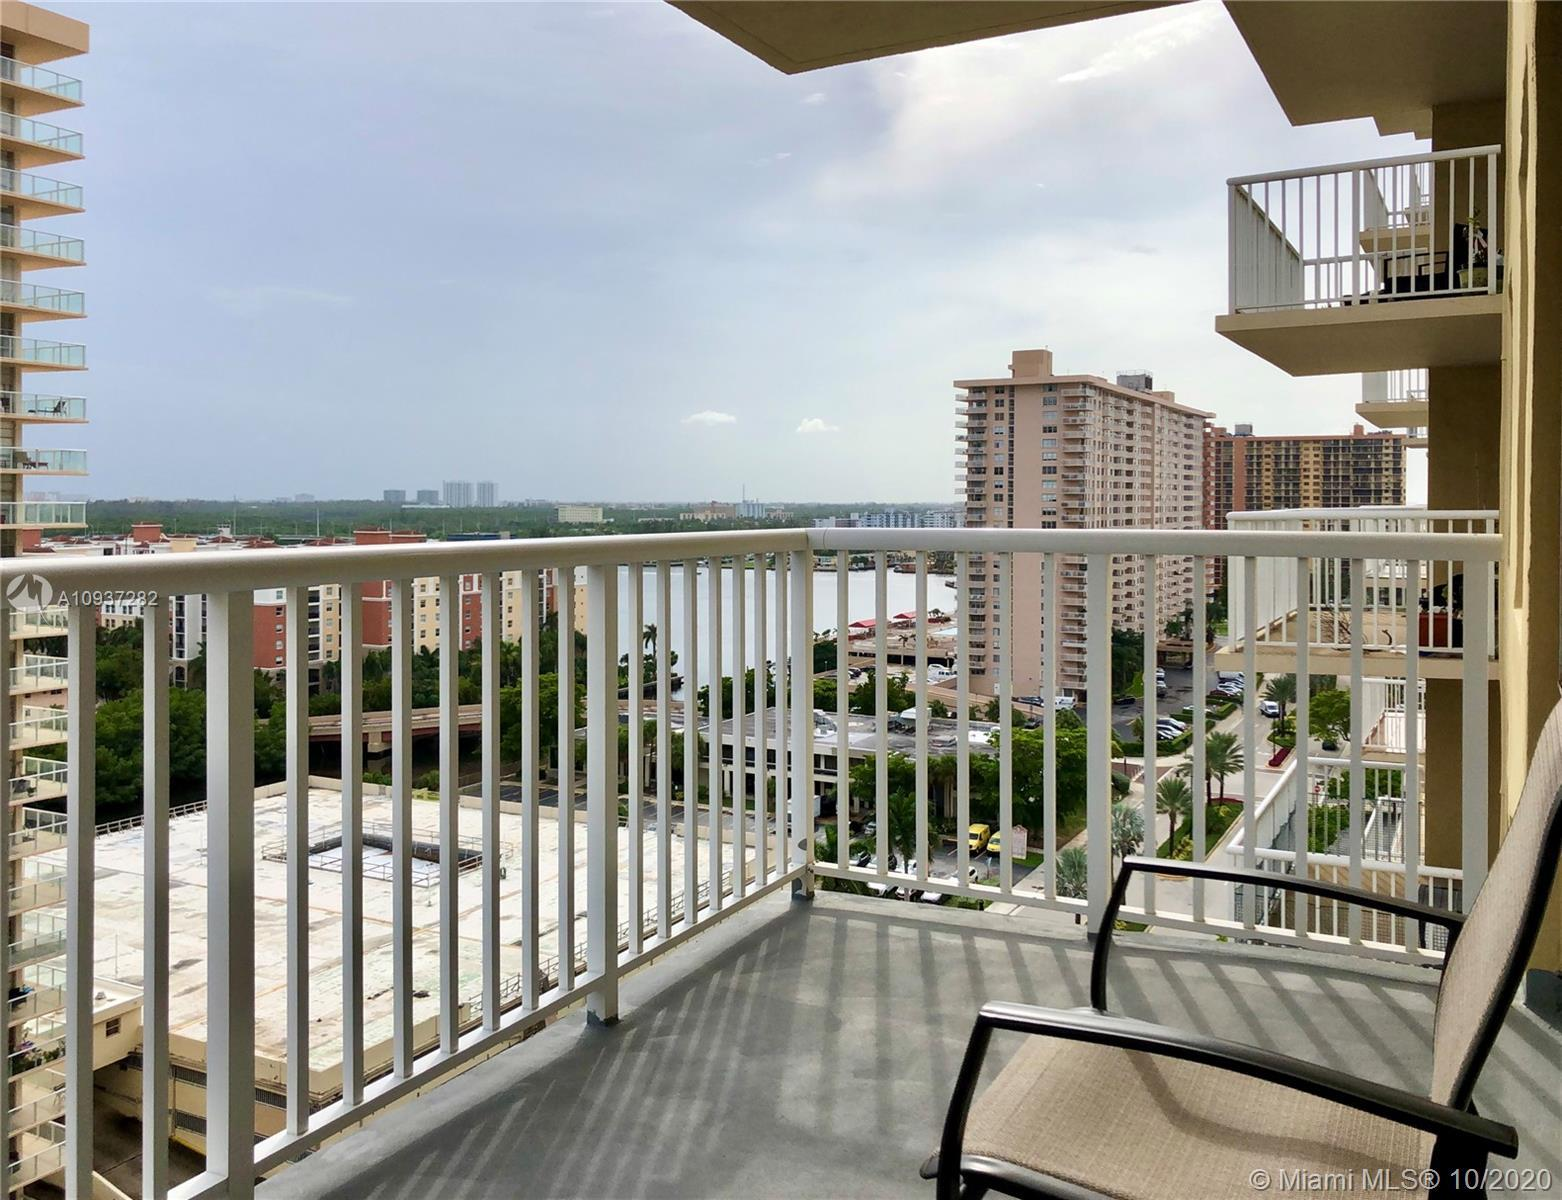 Very bright, clean, spacious and updated 1 bed 1 bath Sunny Isles Beach condo. Open dining area, lar